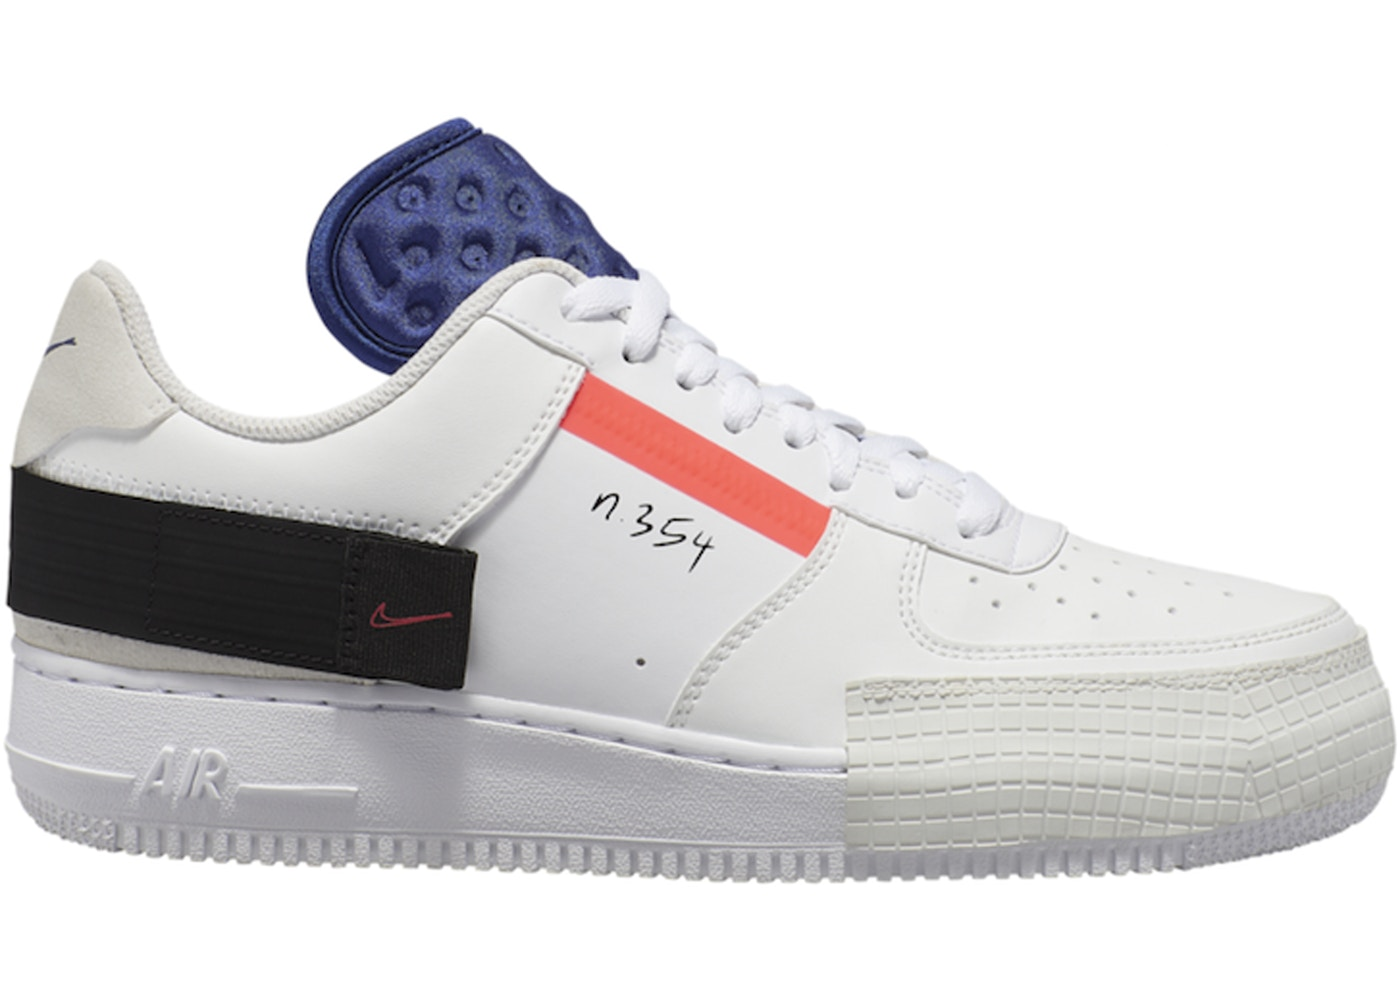 timeless design 6ae30 7e4de Buy Nike Air Force 1 Shoes   Deadstock Sneakers